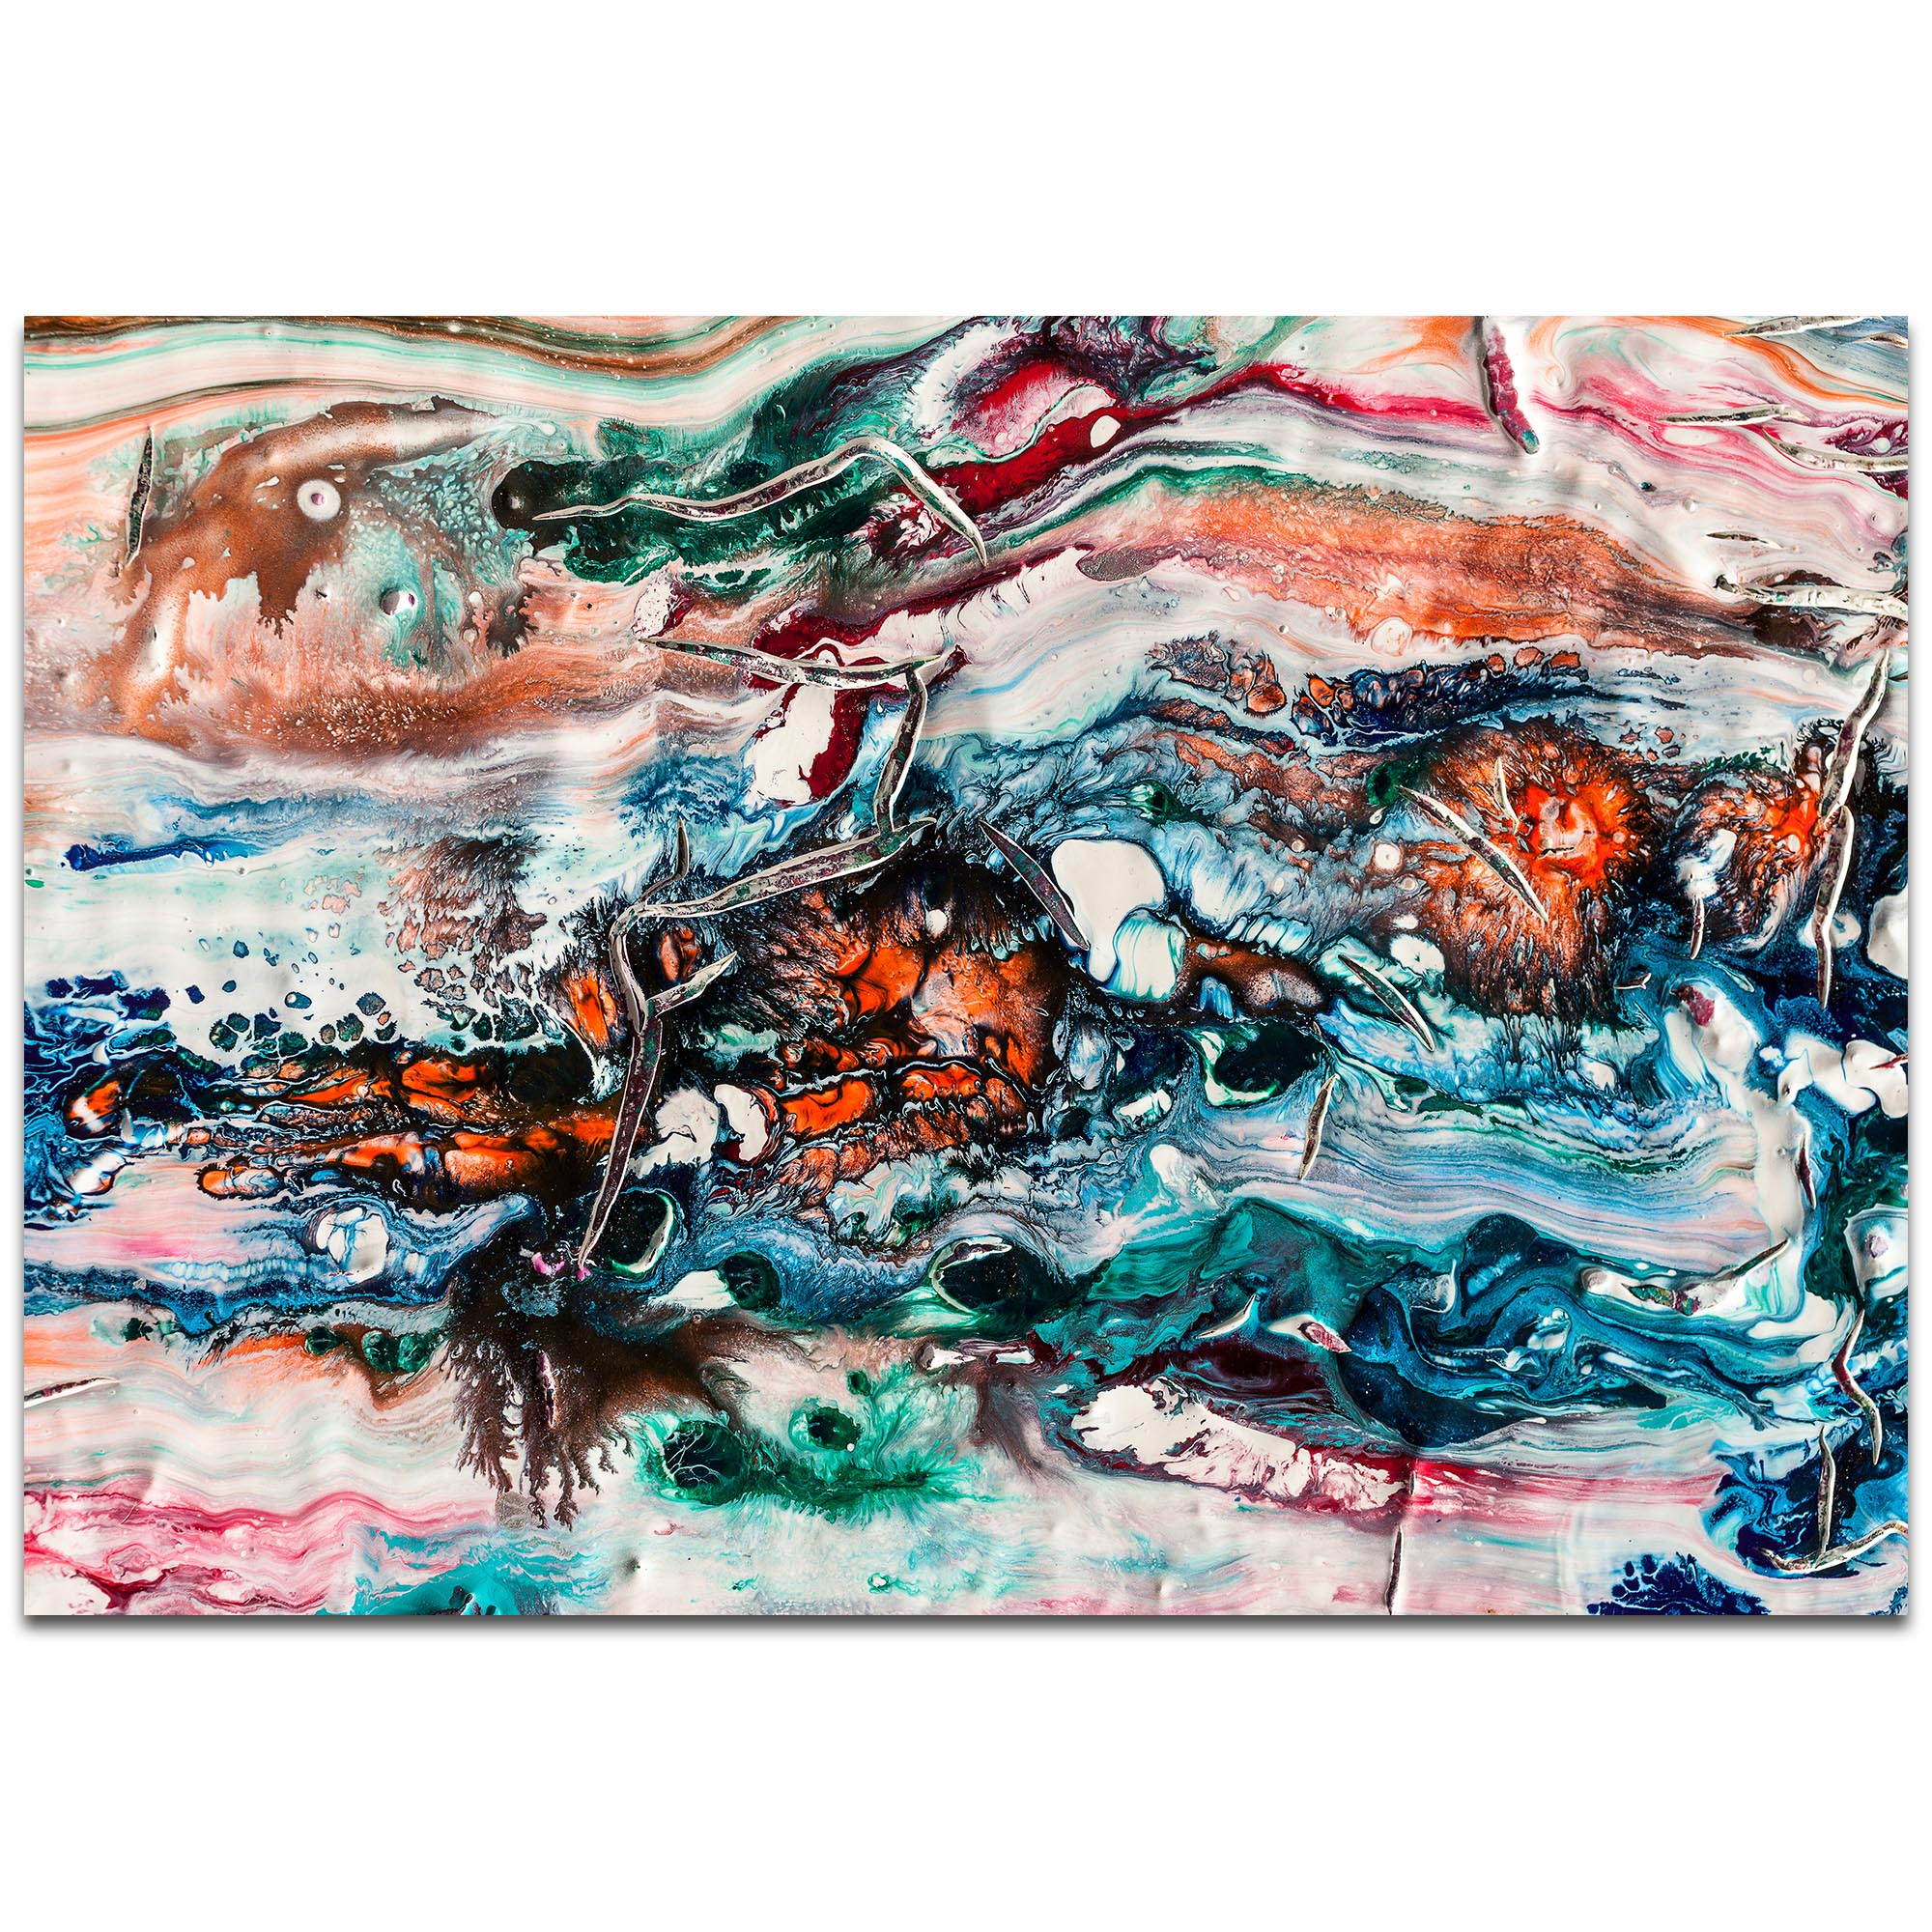 Abstract Wall Art 'Sunset On Her Breath 2' - Colorful Urban Decor on Metal or Plexiglass